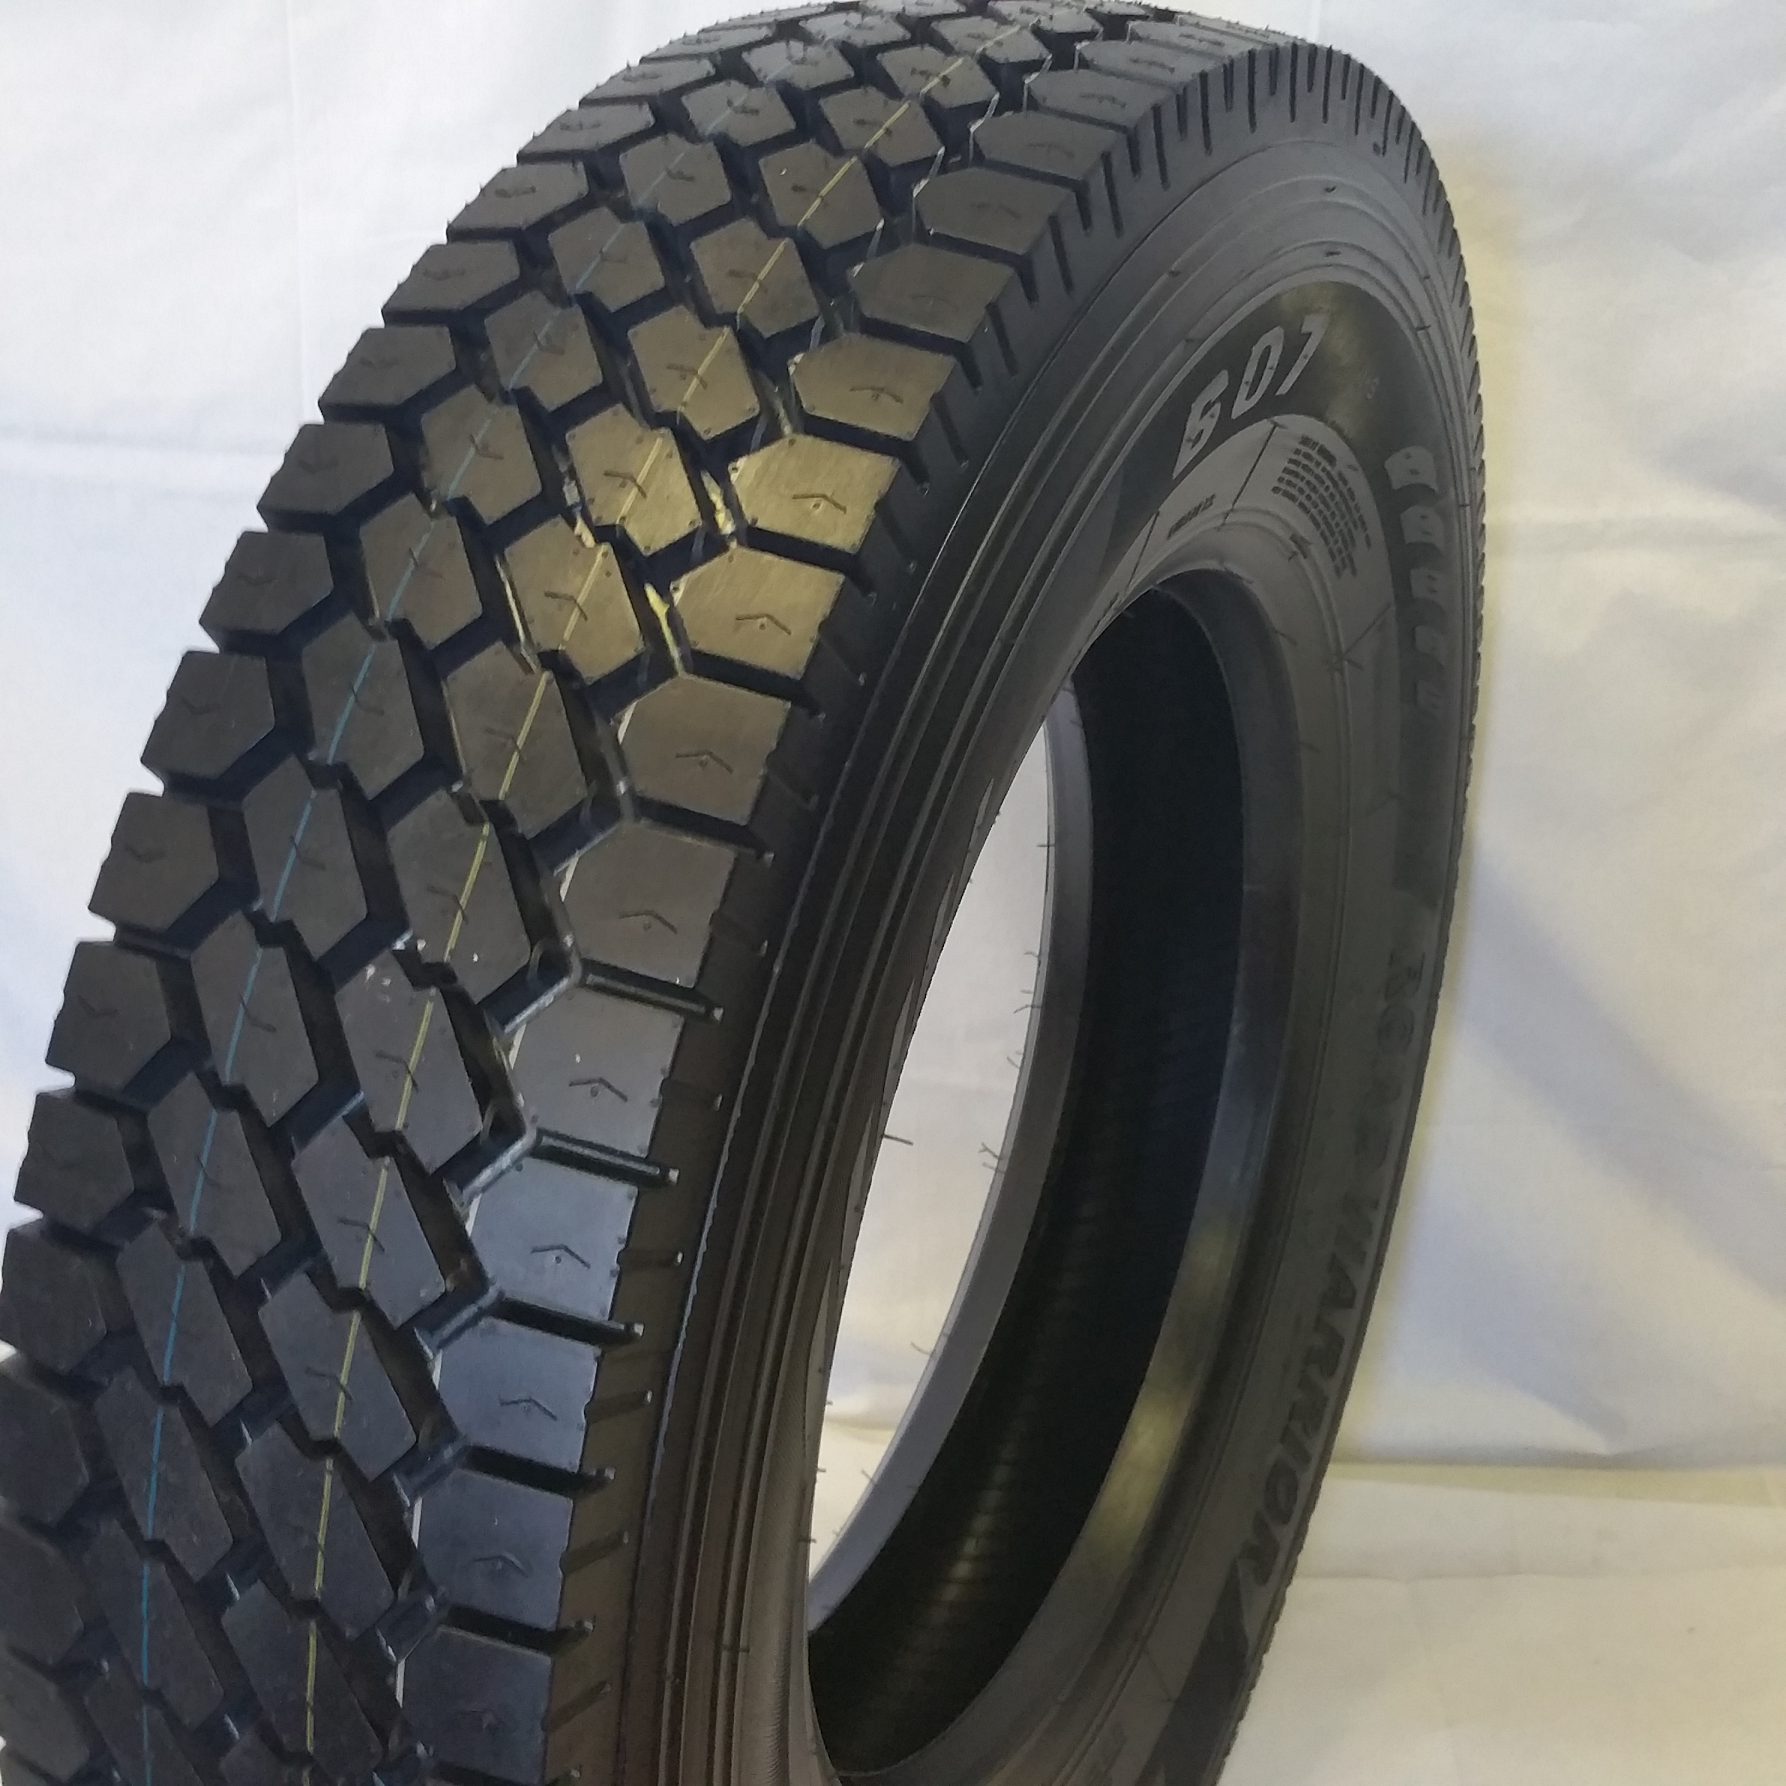 Truck Tires for Sale at Wholesale Prices 11R22.5-607 Drive Tires